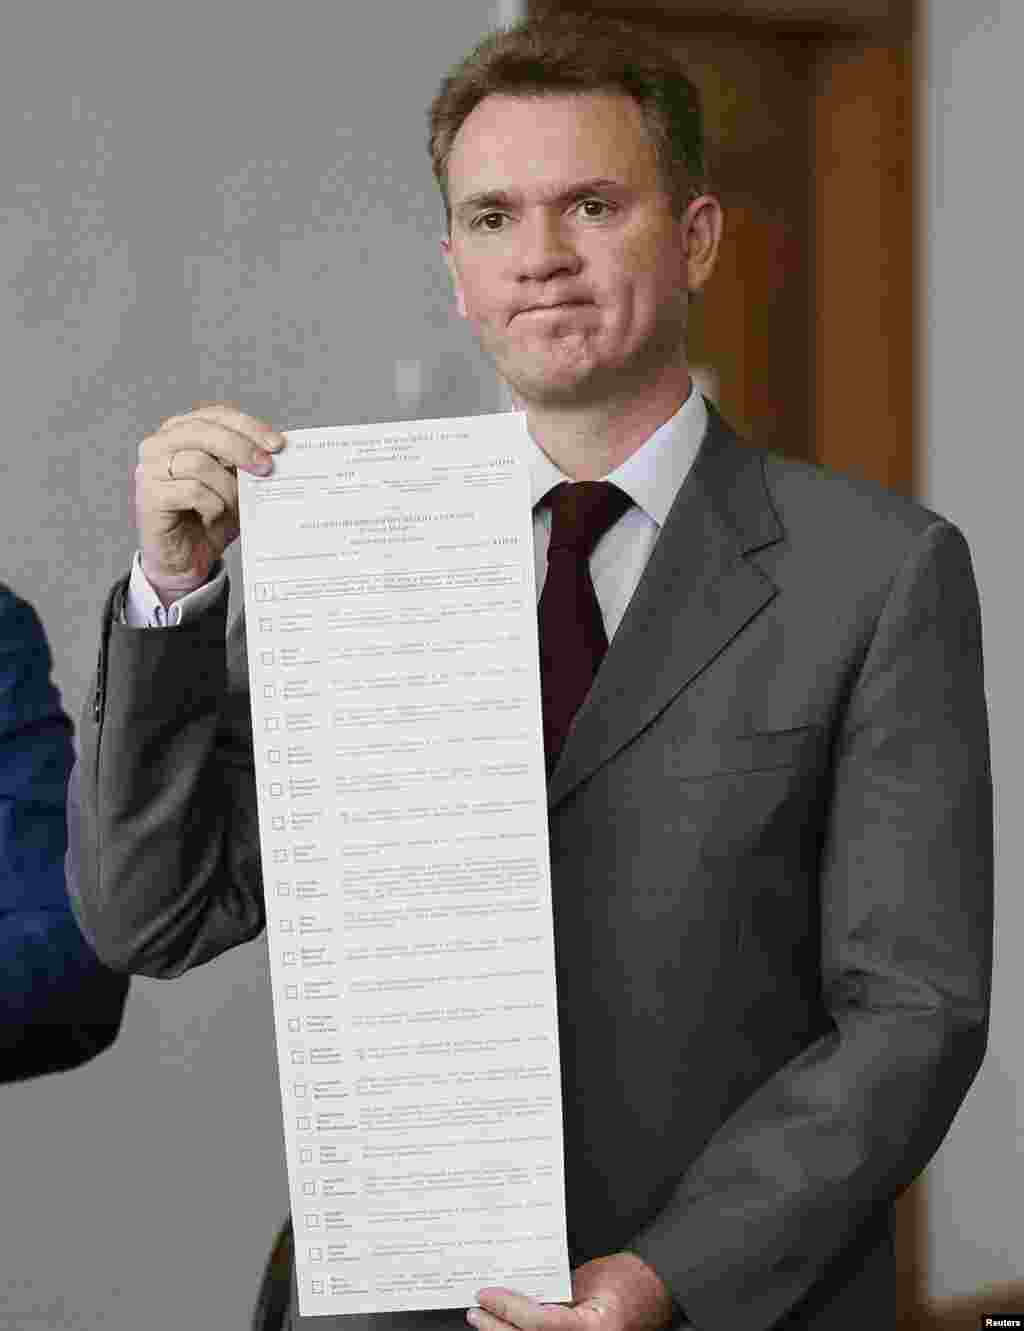 Mykhaylo Okhendovsky, head of Ukraine's Central Election Commission, shows a long ballot with names of 21 presidential candidates, at a news conference, in Kyiv, May 14, 2014.